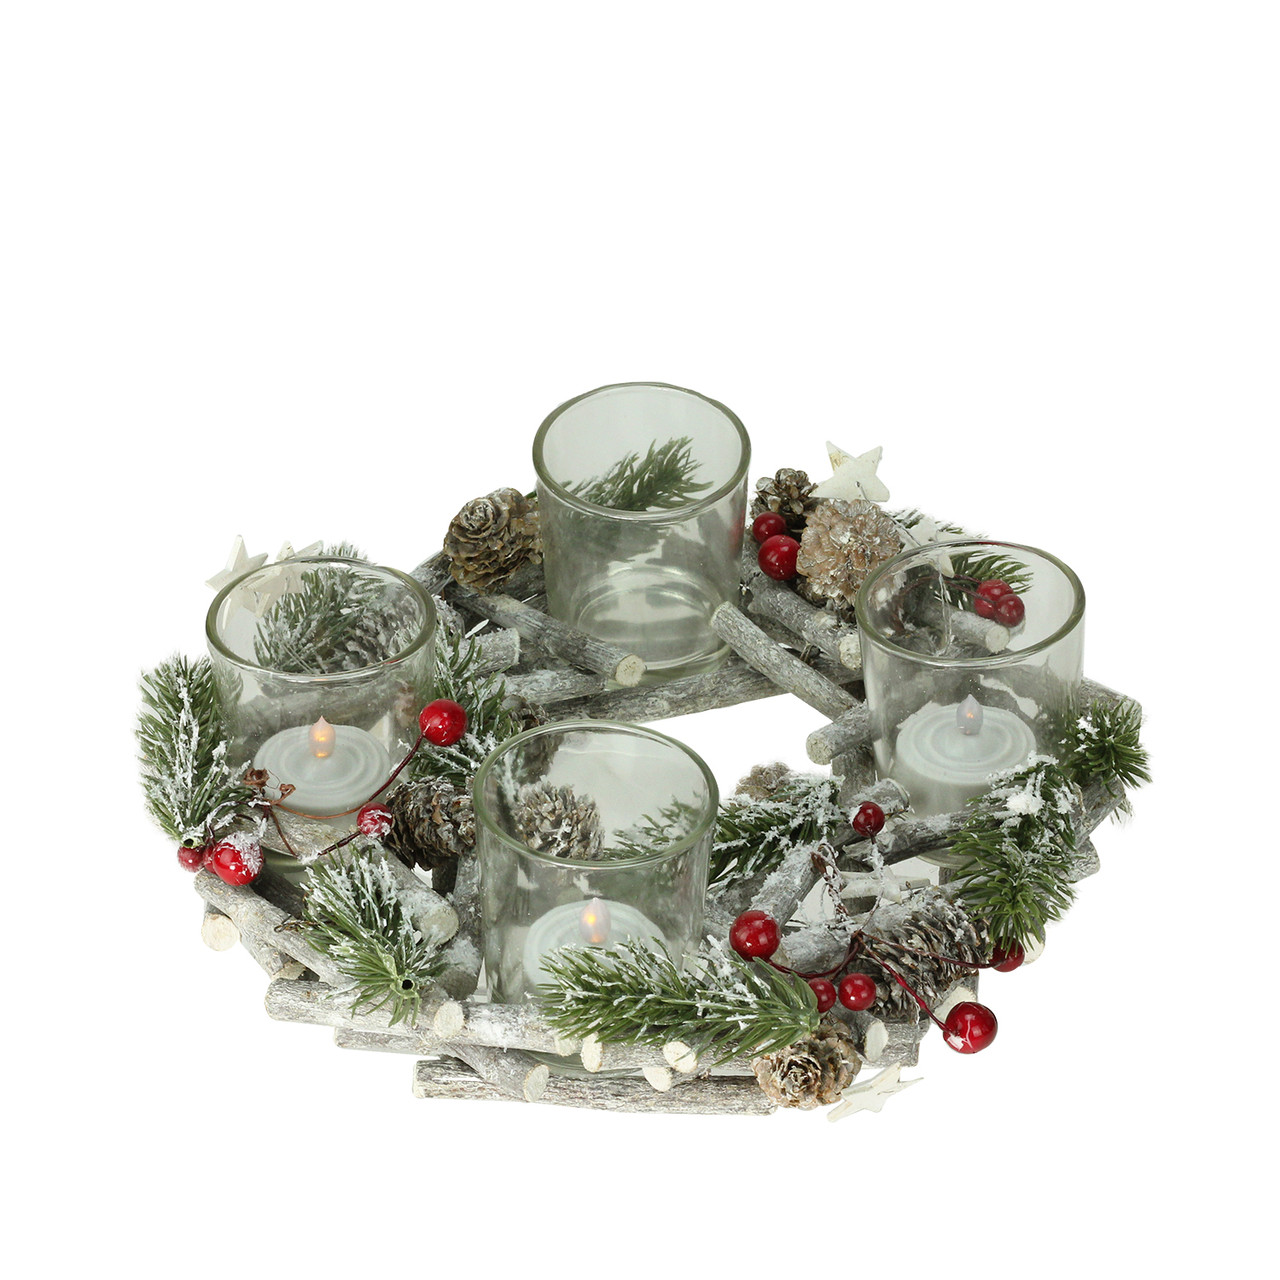 10 frosted berries branches and stars christmas votive candle holder centerpiece 32262306 - How To Decorate Votive Candle Holders For Christmas